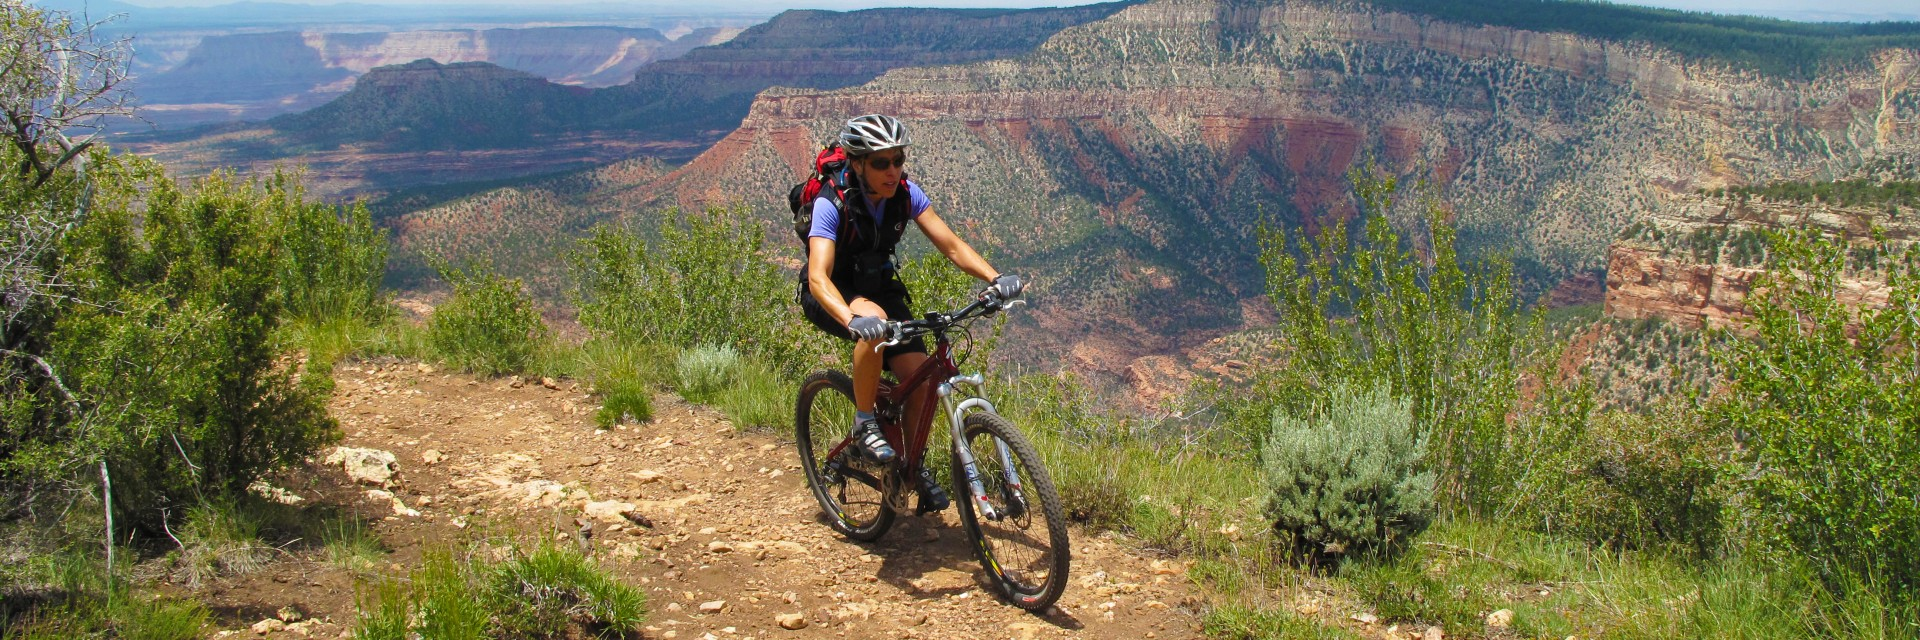 A mountain biker departs Fence Point on the Rainbow Rim Trail during a 5-day guided tour along the North Rim of the Grand Canyon